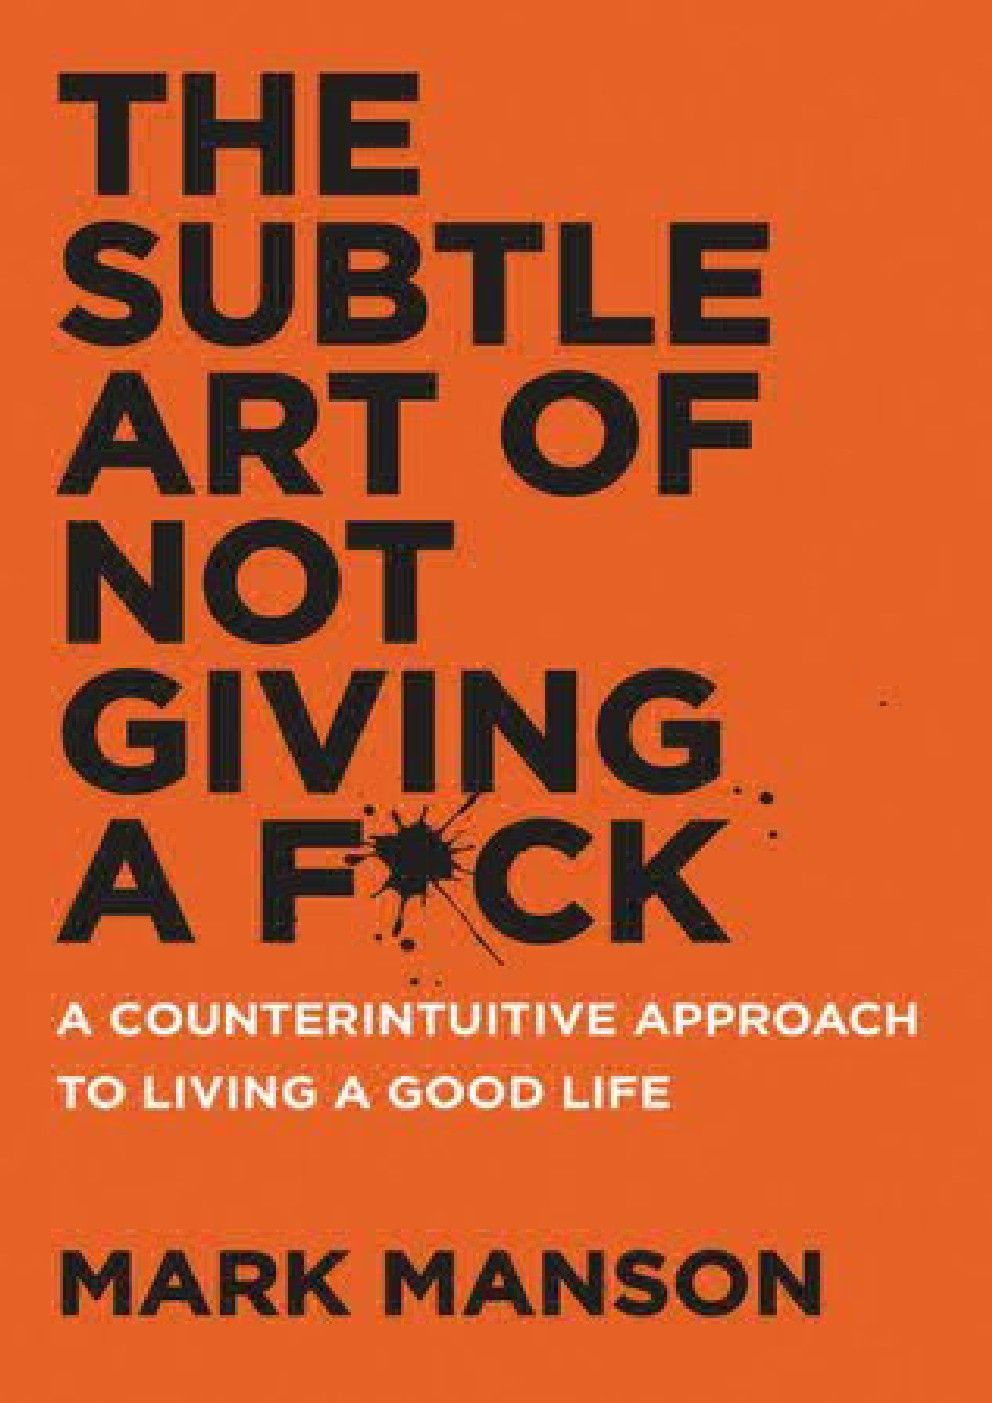 Download The Subtle Art Of Not Giving A F Ck A Counterintuitive Approach To Living A Good Life Pd Books Books To Read Self Help